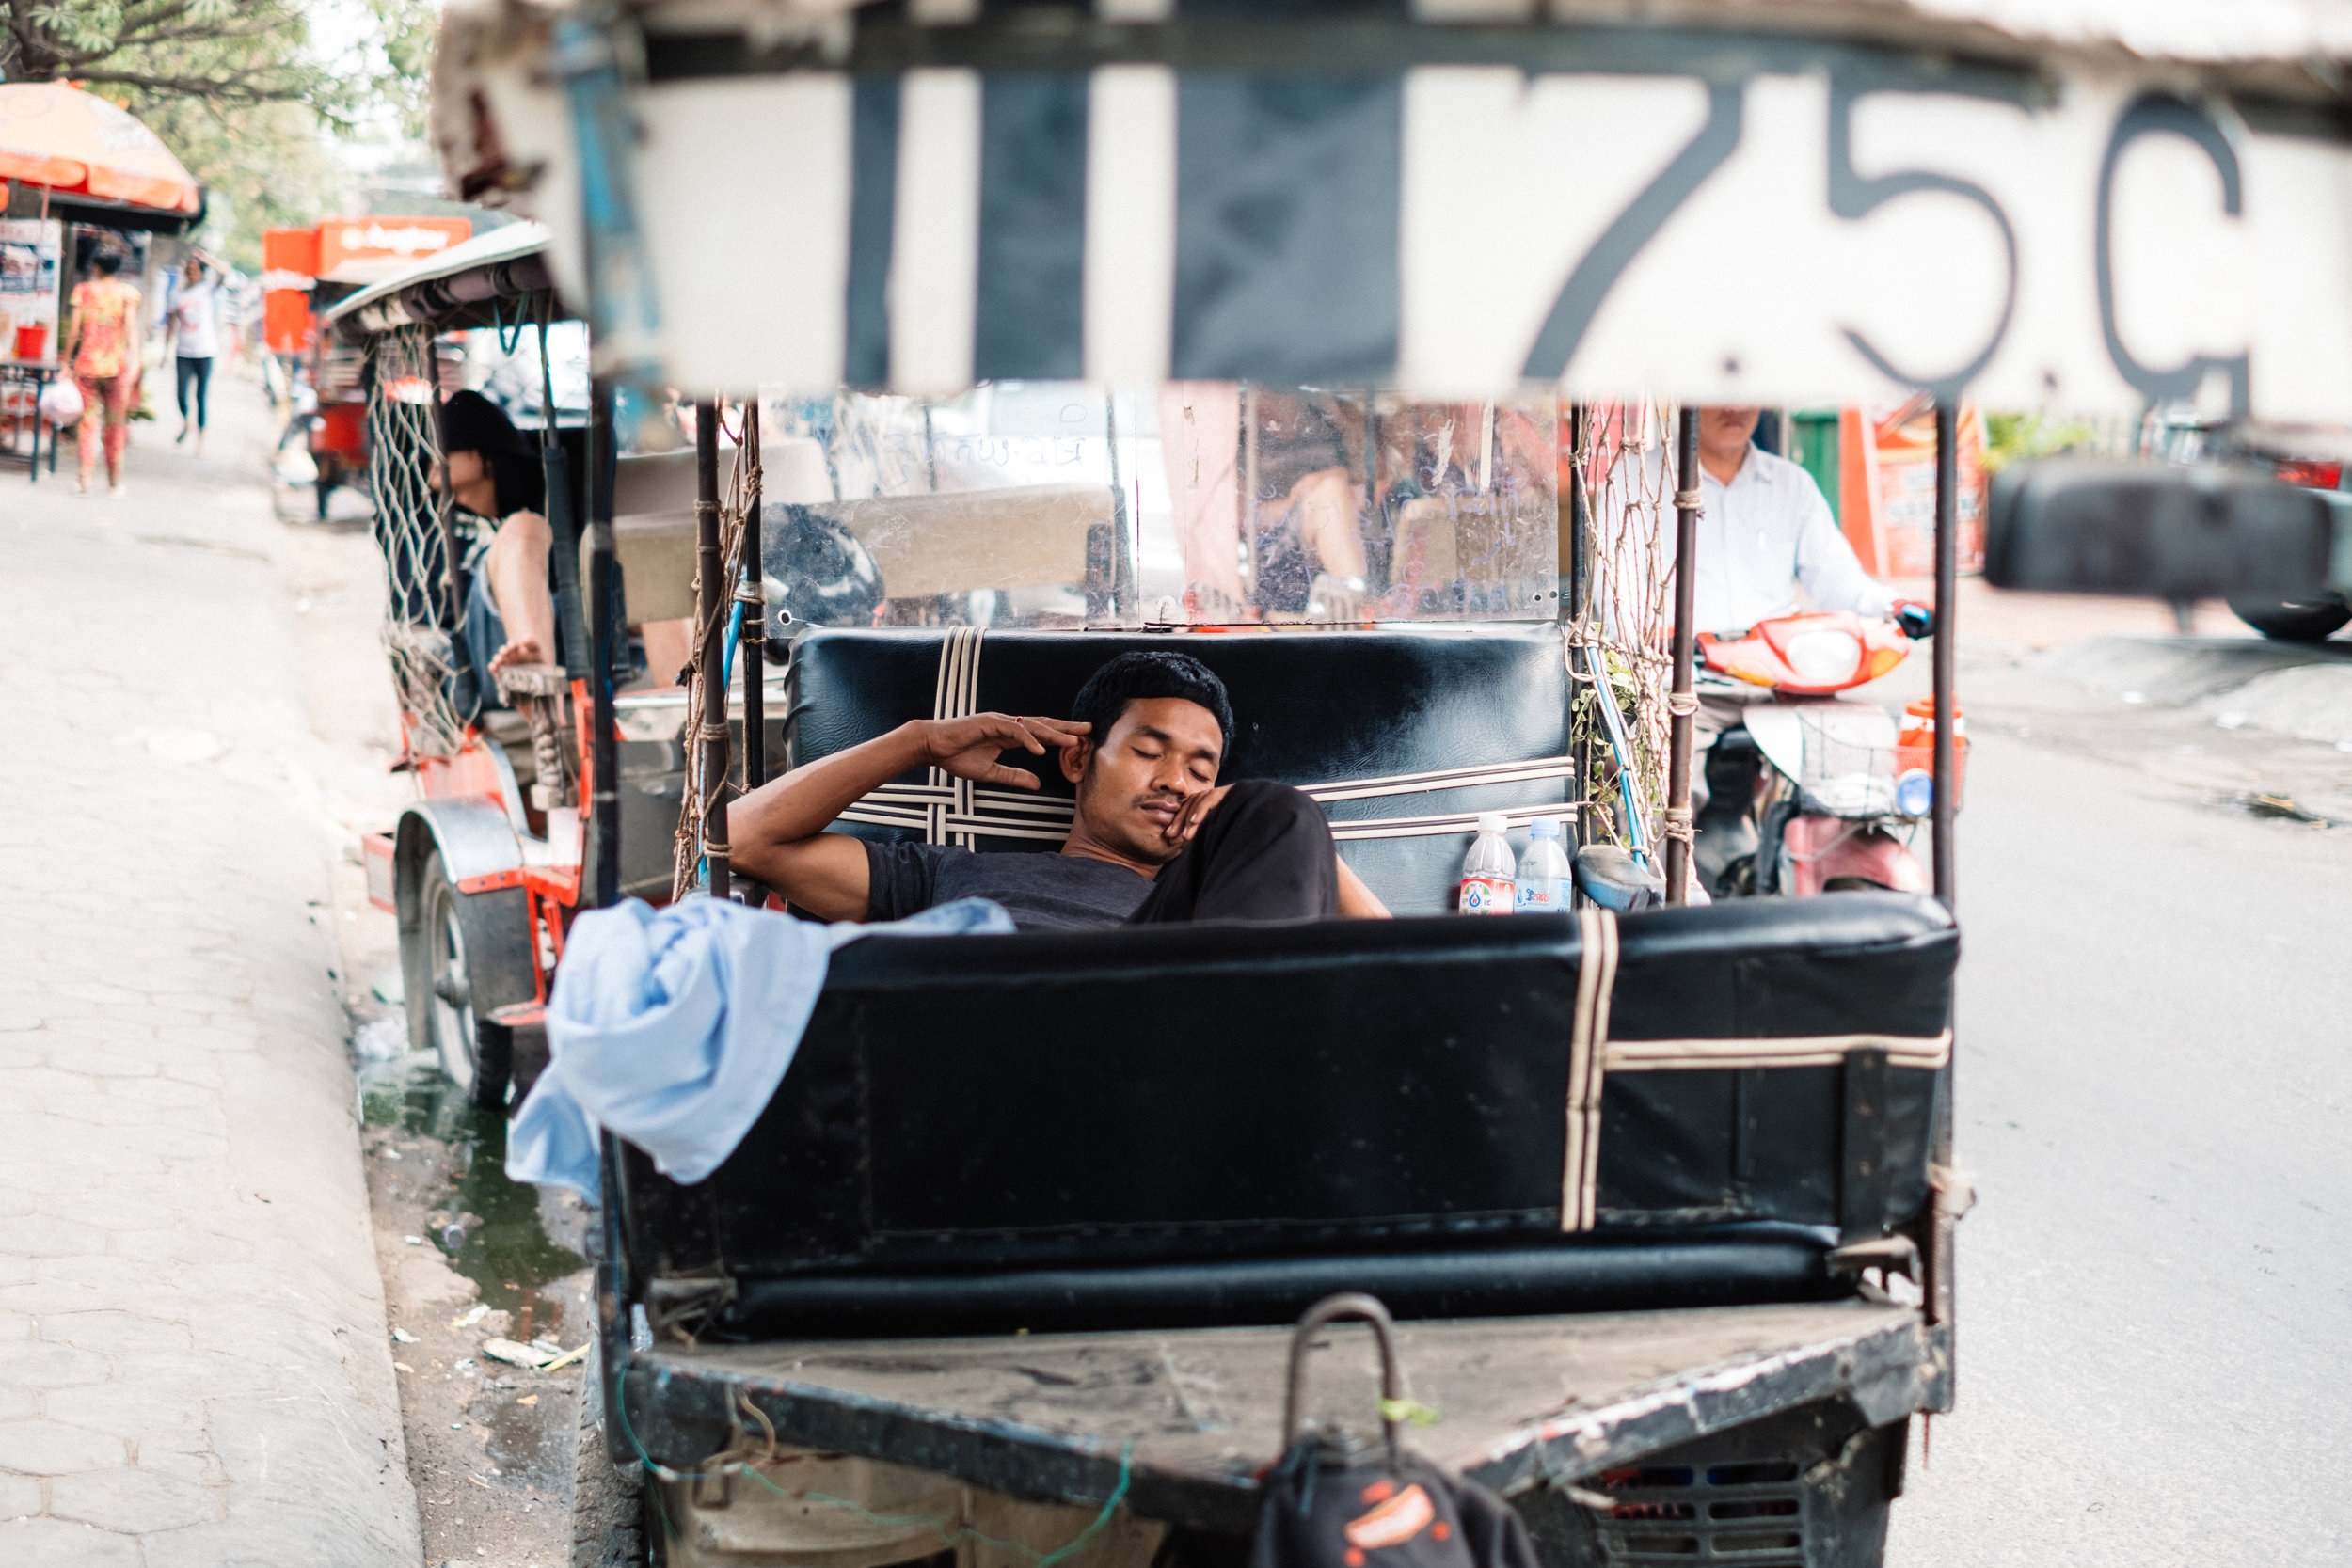 a man is having a nap in richshaw in the streets of Phnom Penh in Cambodia